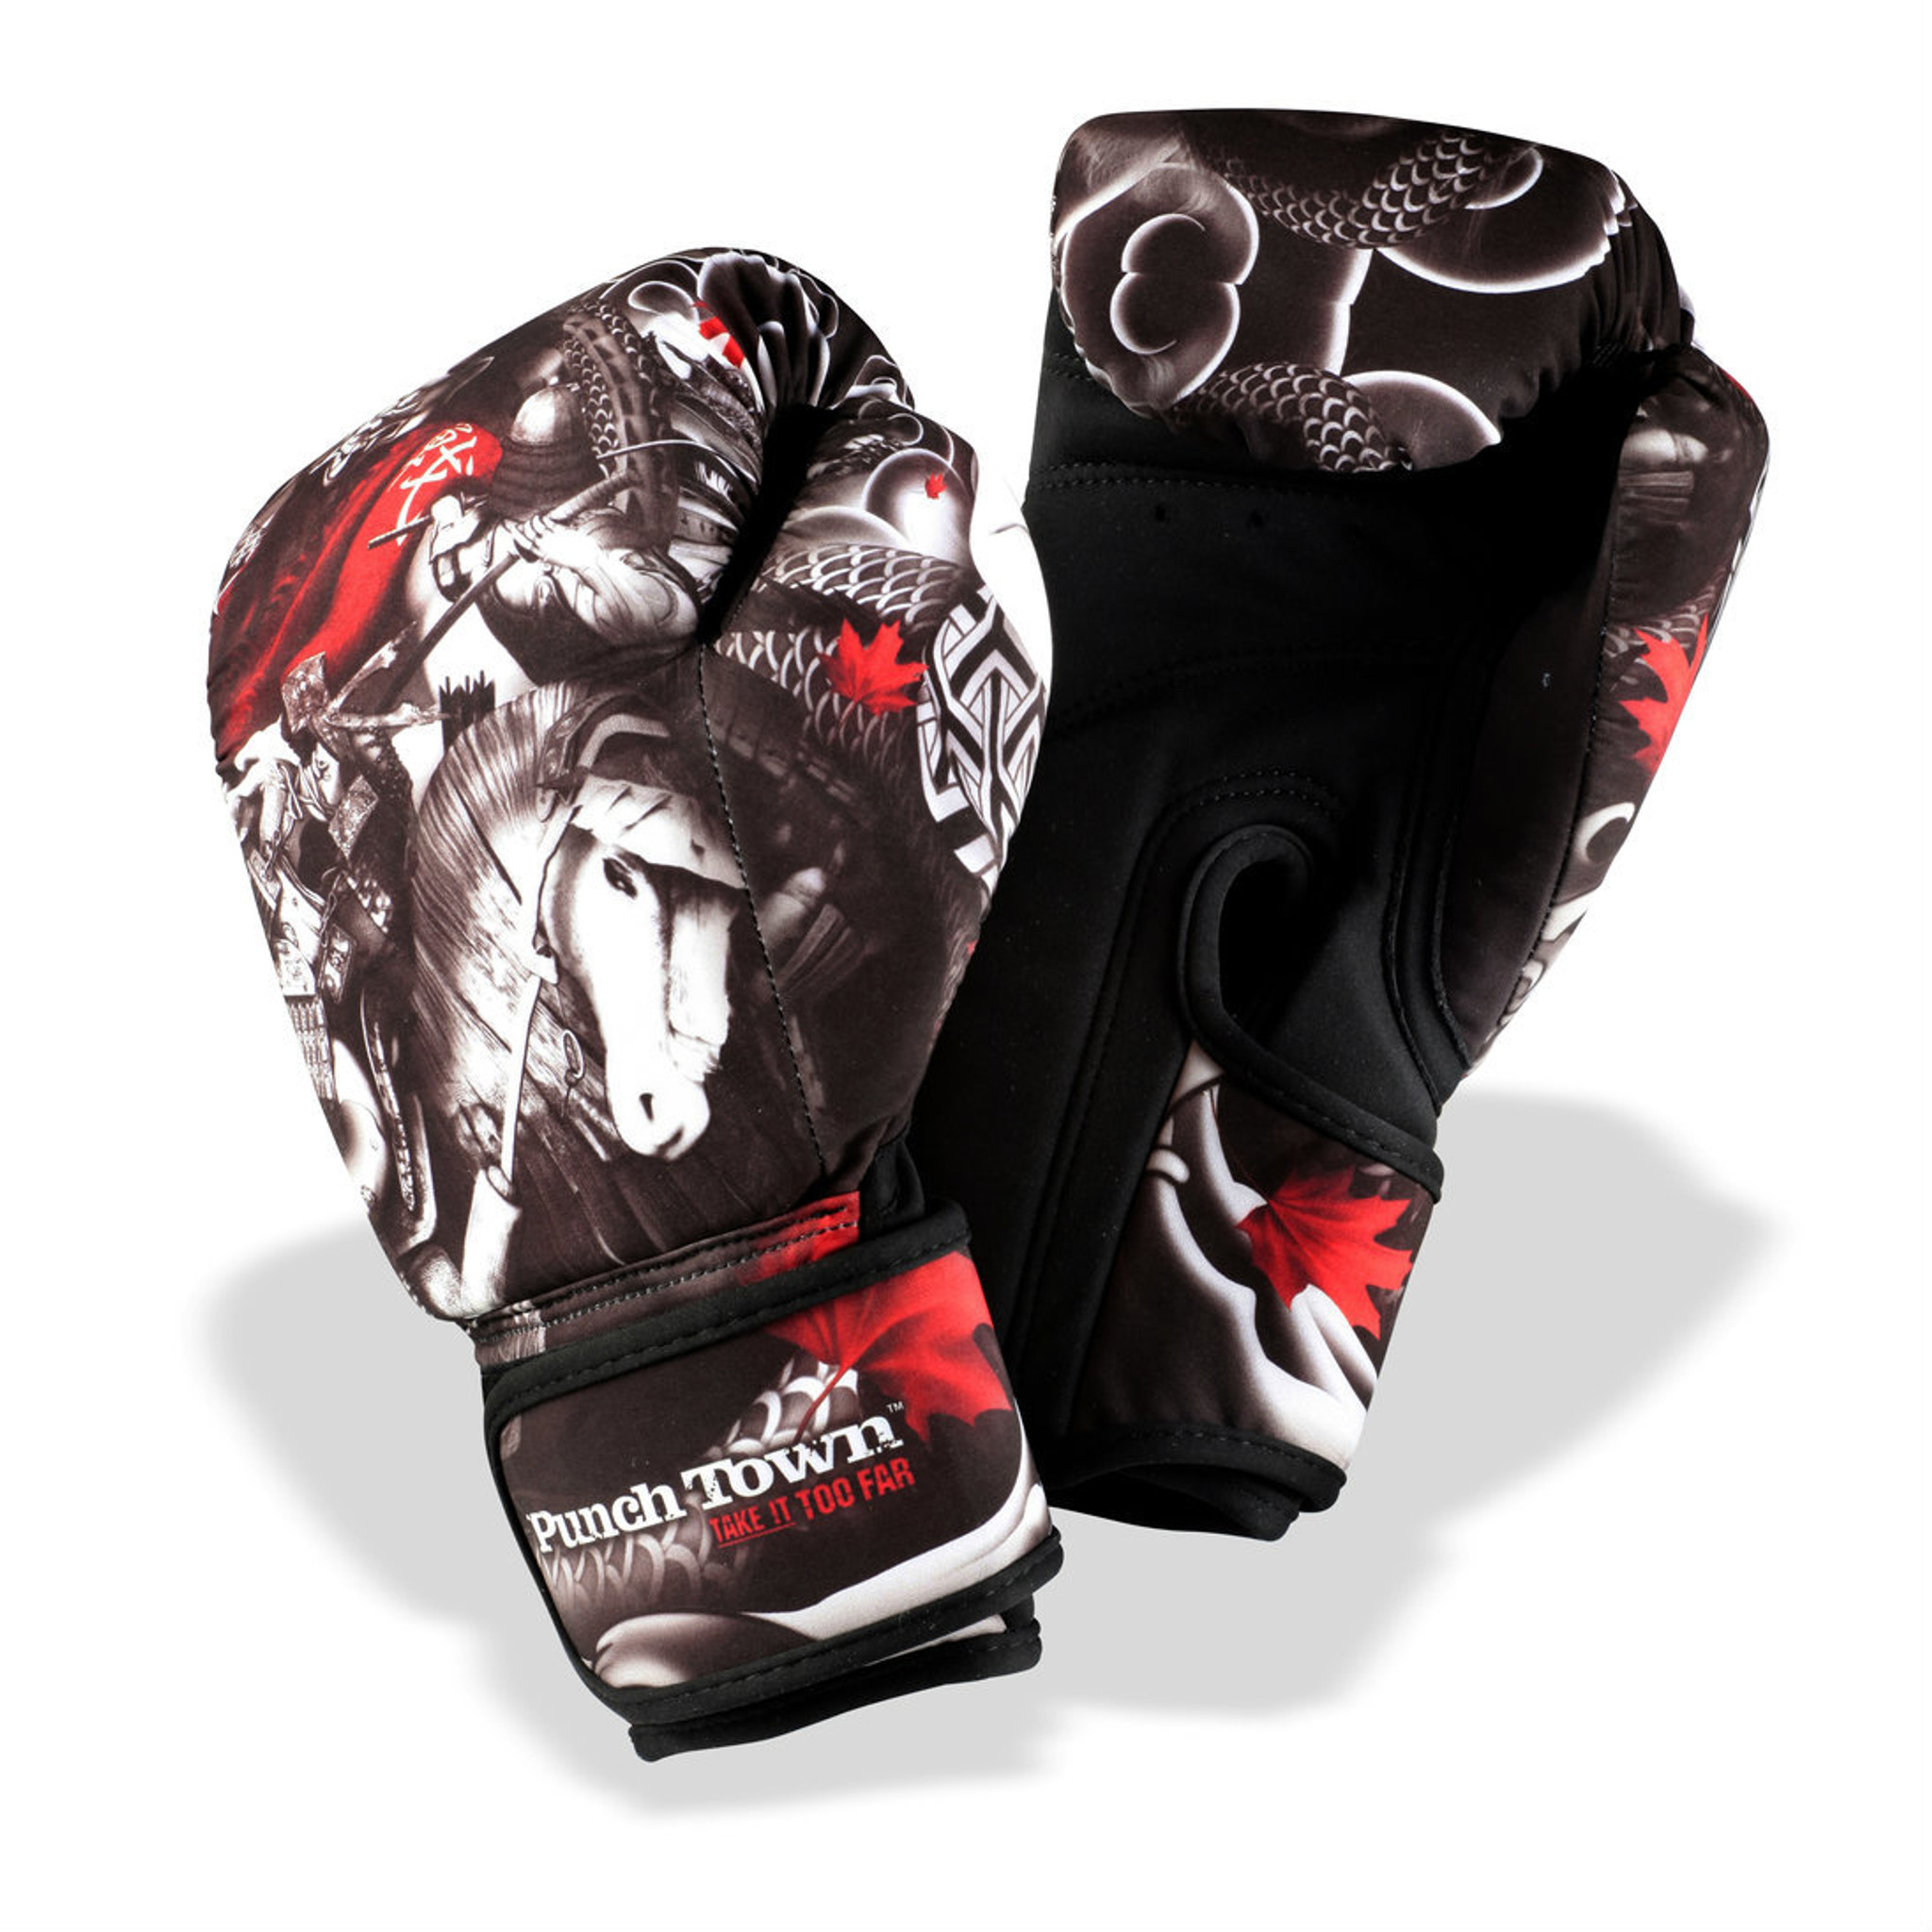 PunchTown The Balance MMA Spats SPARRING TRAINING